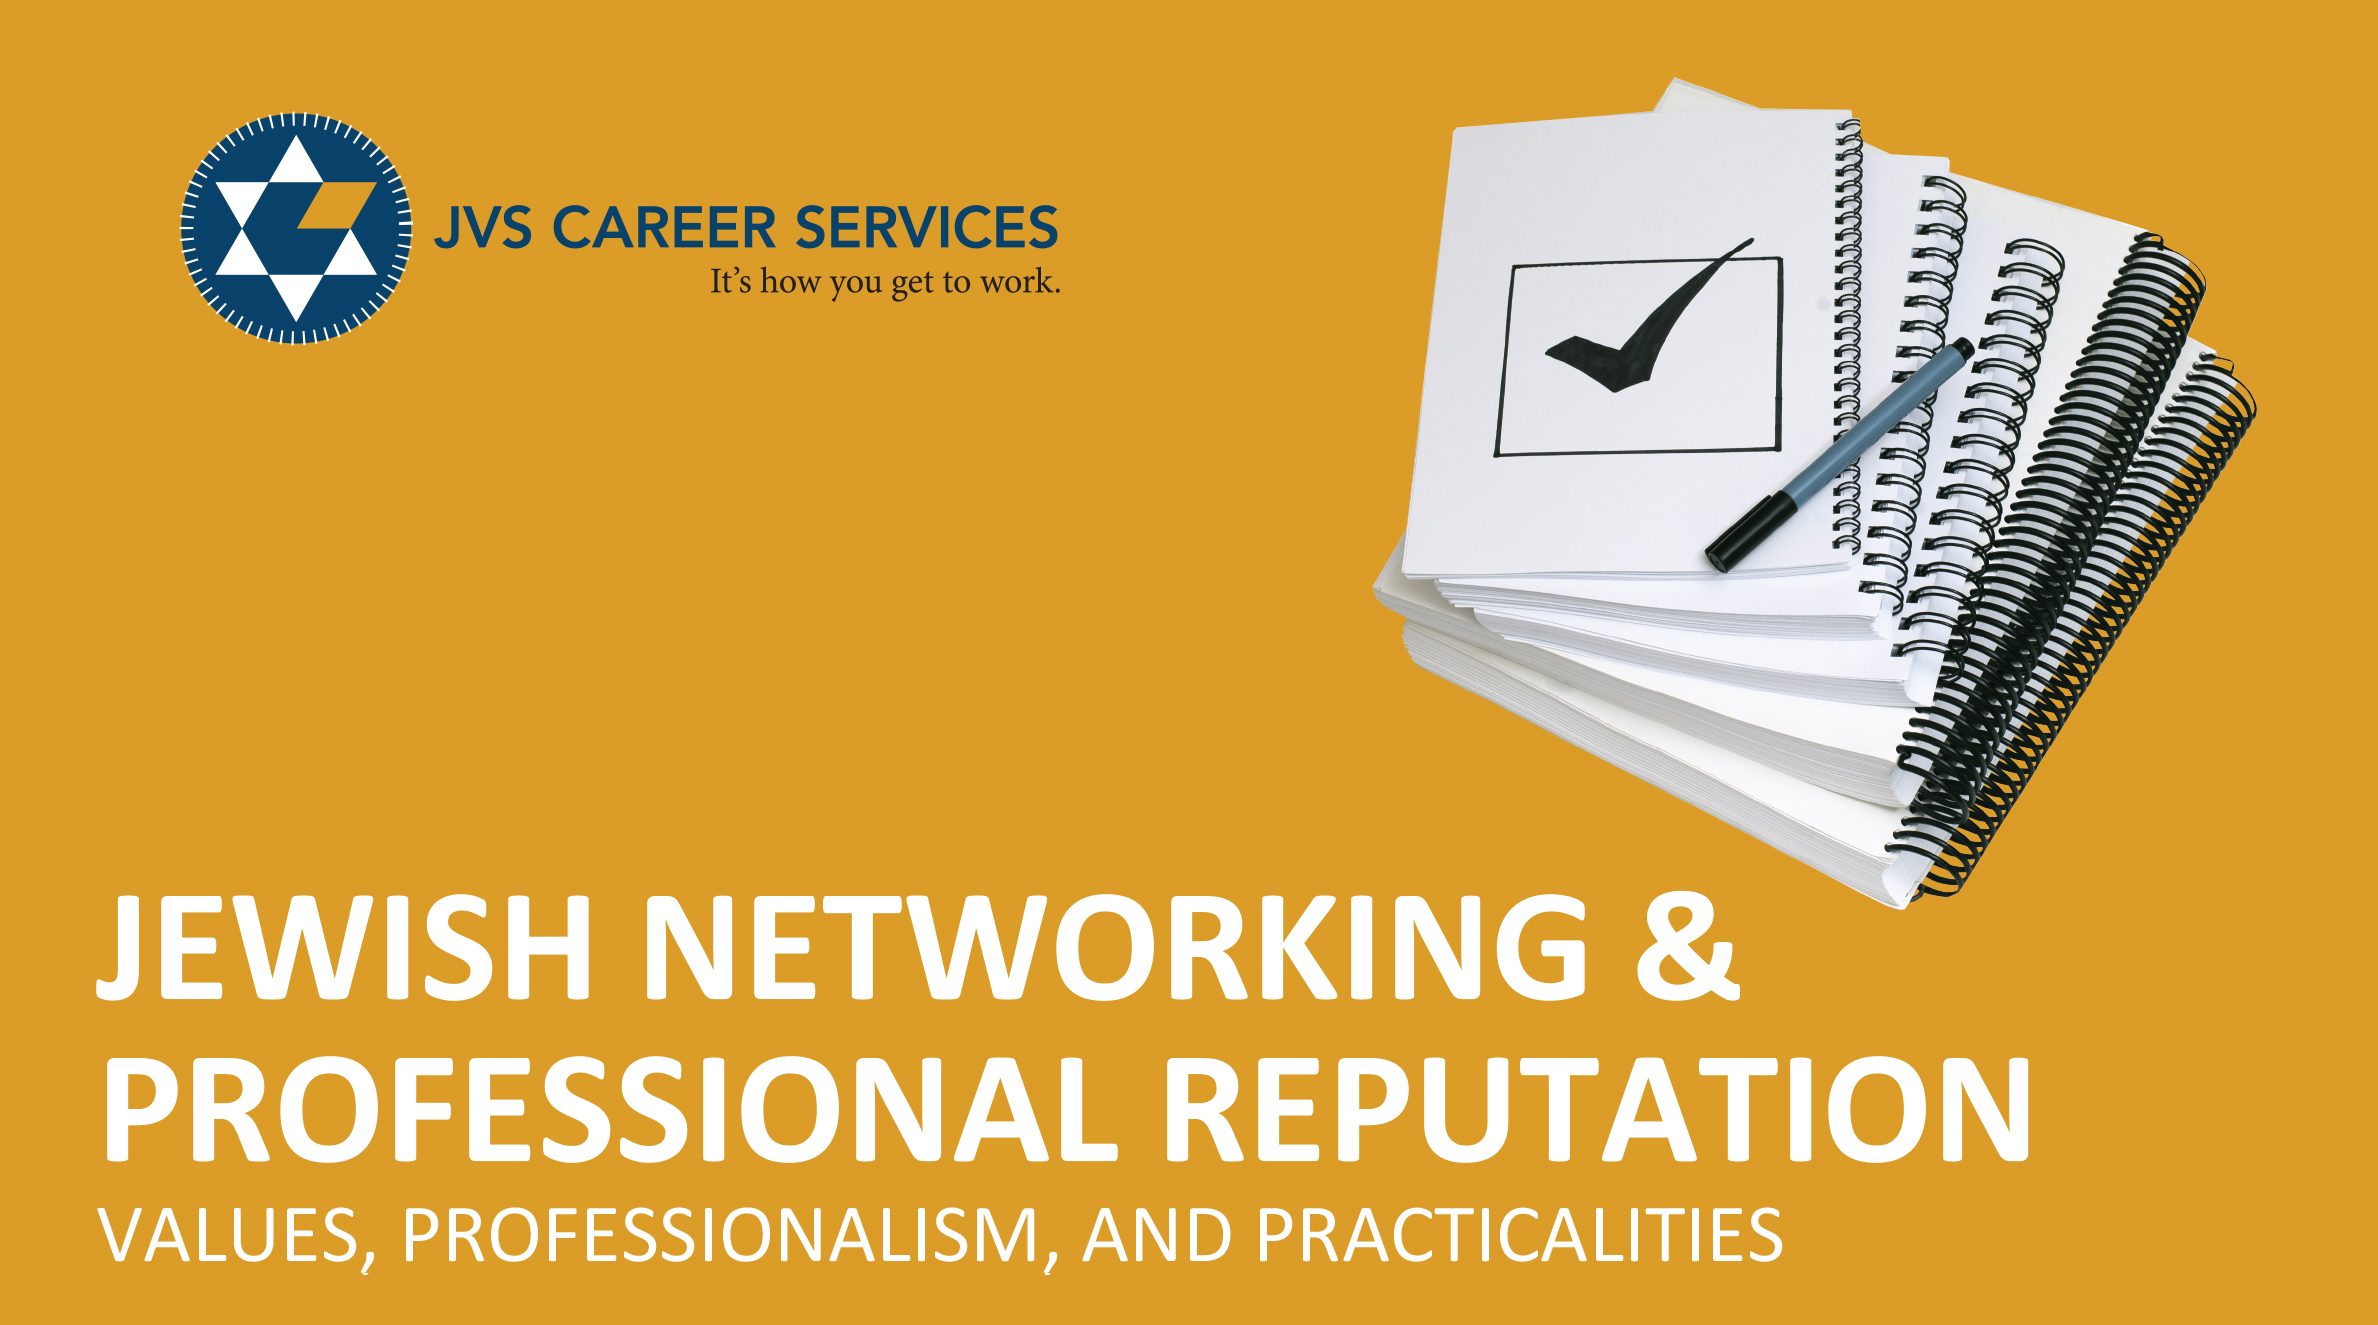 jewish networking professional reputation jvs career services jewish networking professional reputation